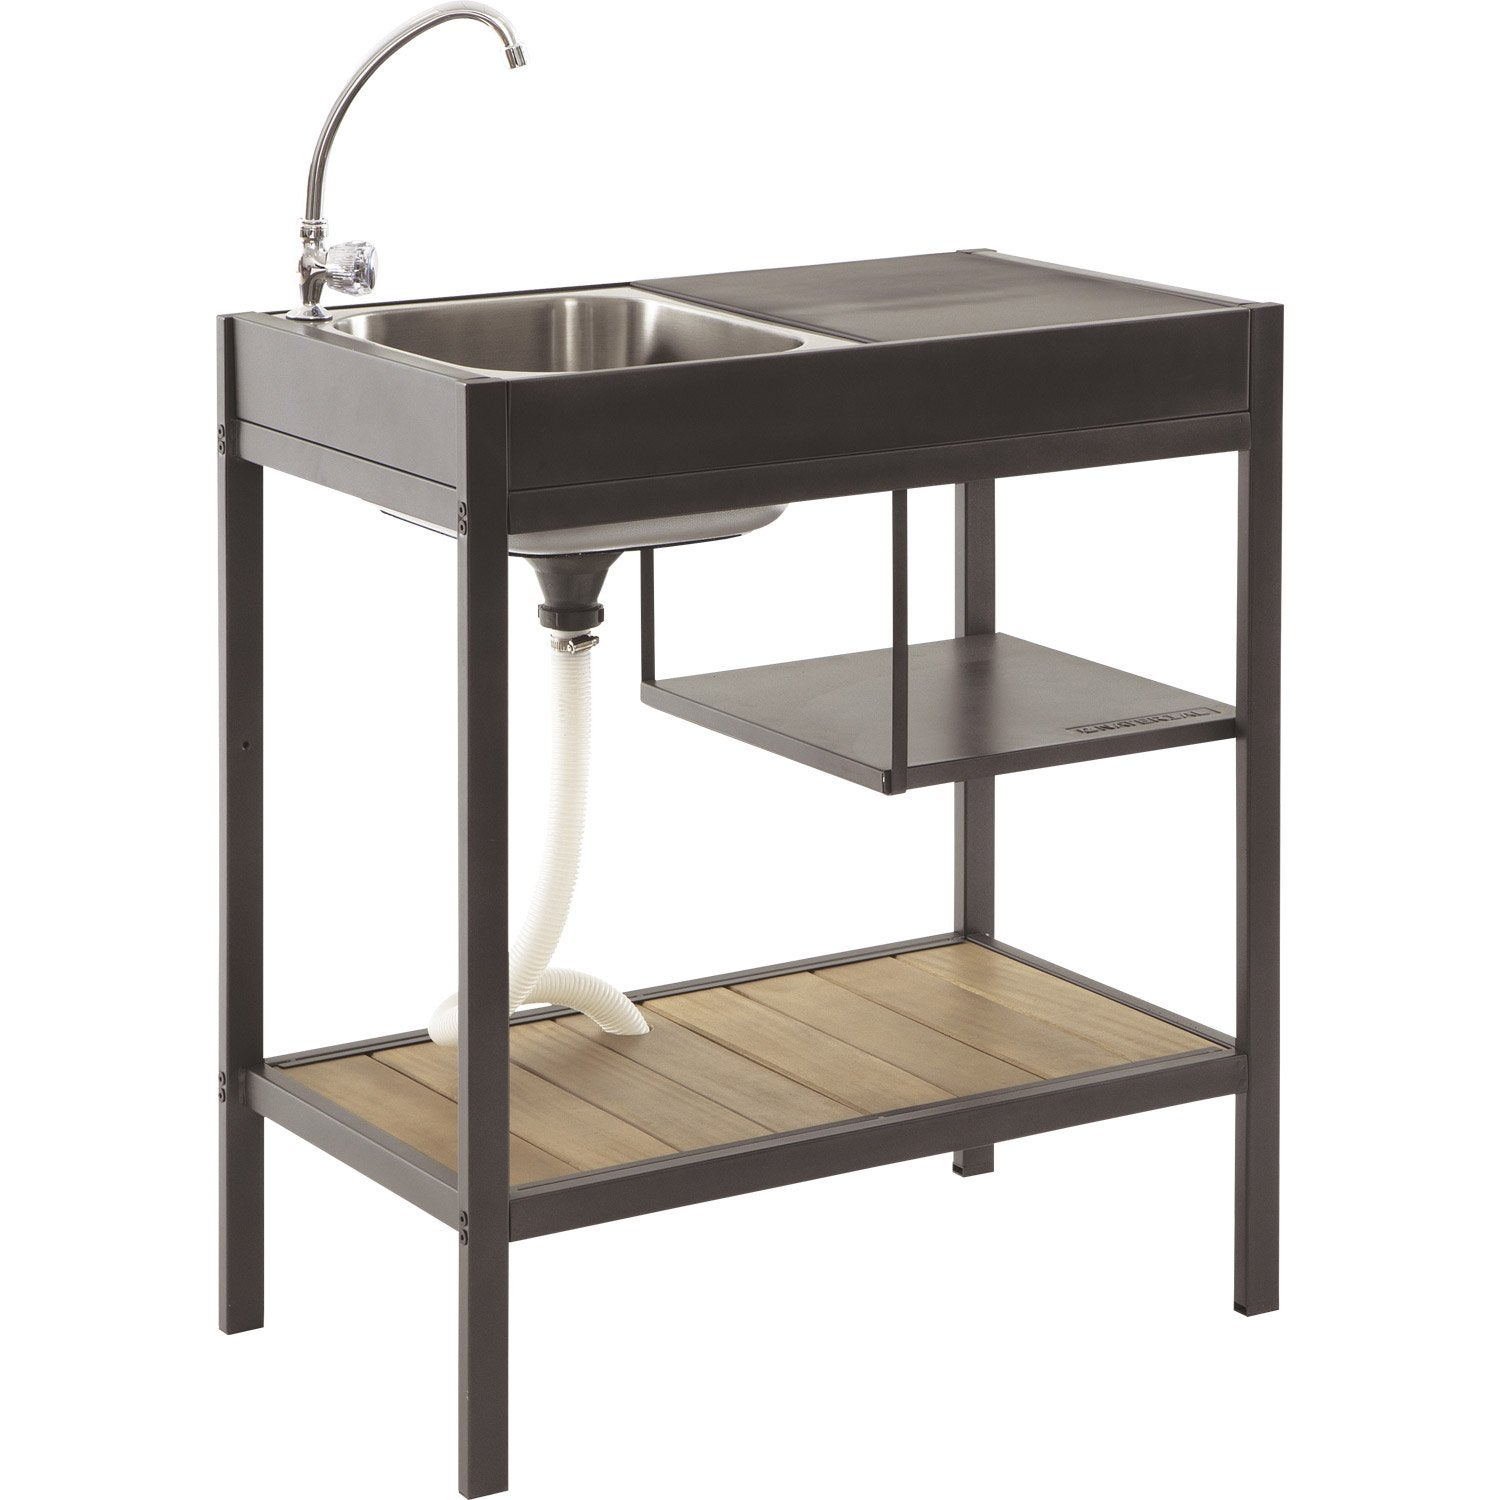 Point d 39 eau naterial cuisine module resort leroy merlin - Table de cuisine leroy merlin ...